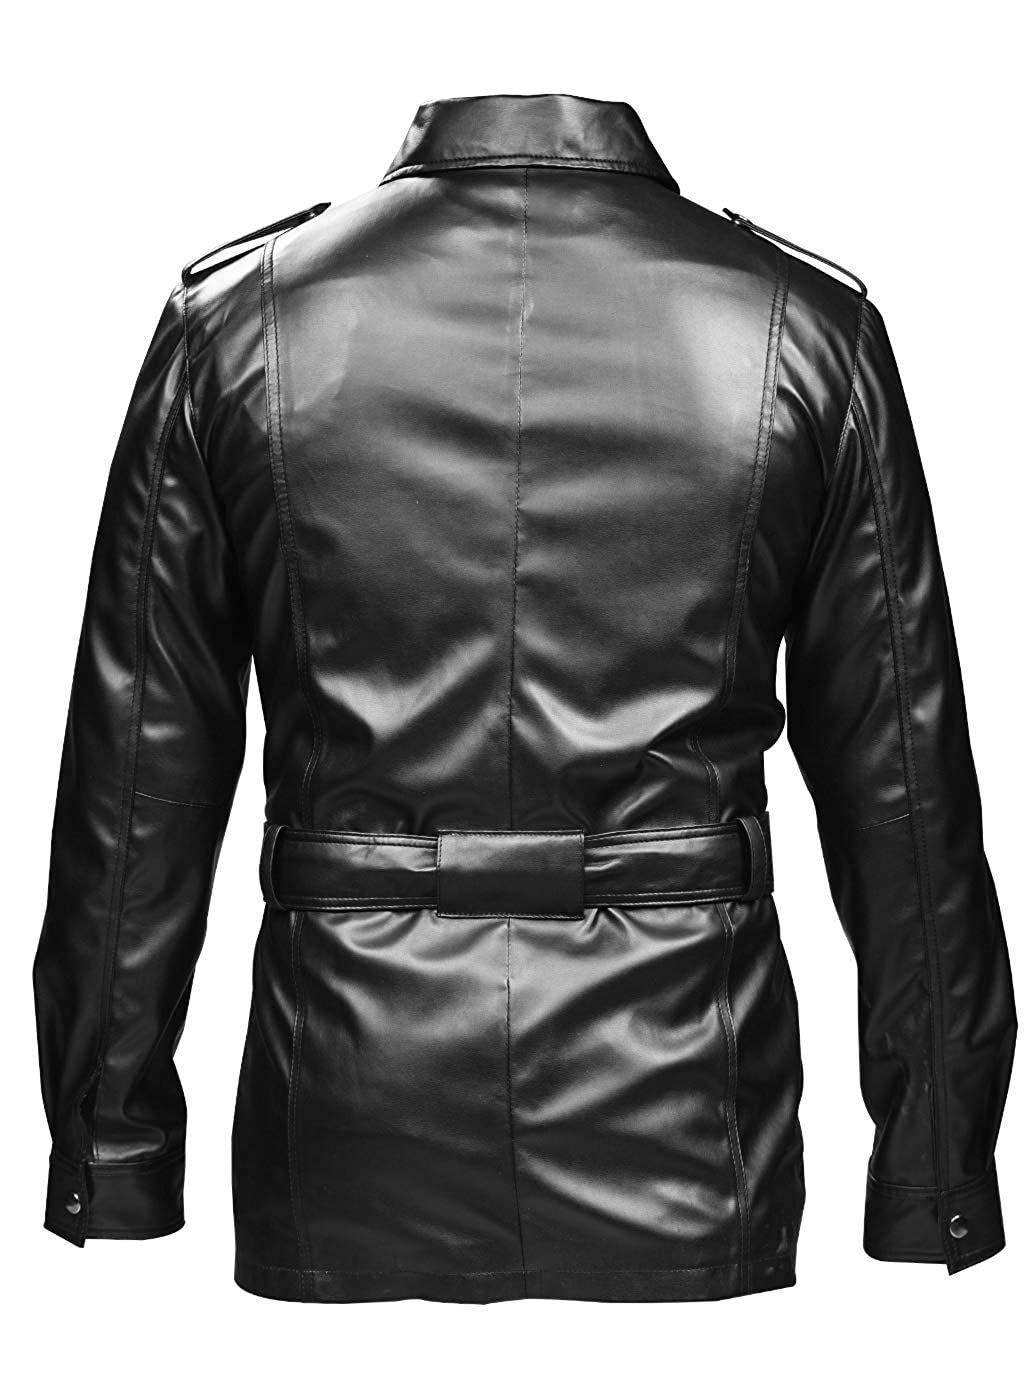 0cd4c2ff2290 ST Leather Trench Coat Blazer Men Brandit Army Military Style Jacket Faux Black  Leather Slim Fit Big Tall Boys Kids Size at Amazon Men's Clothing store: